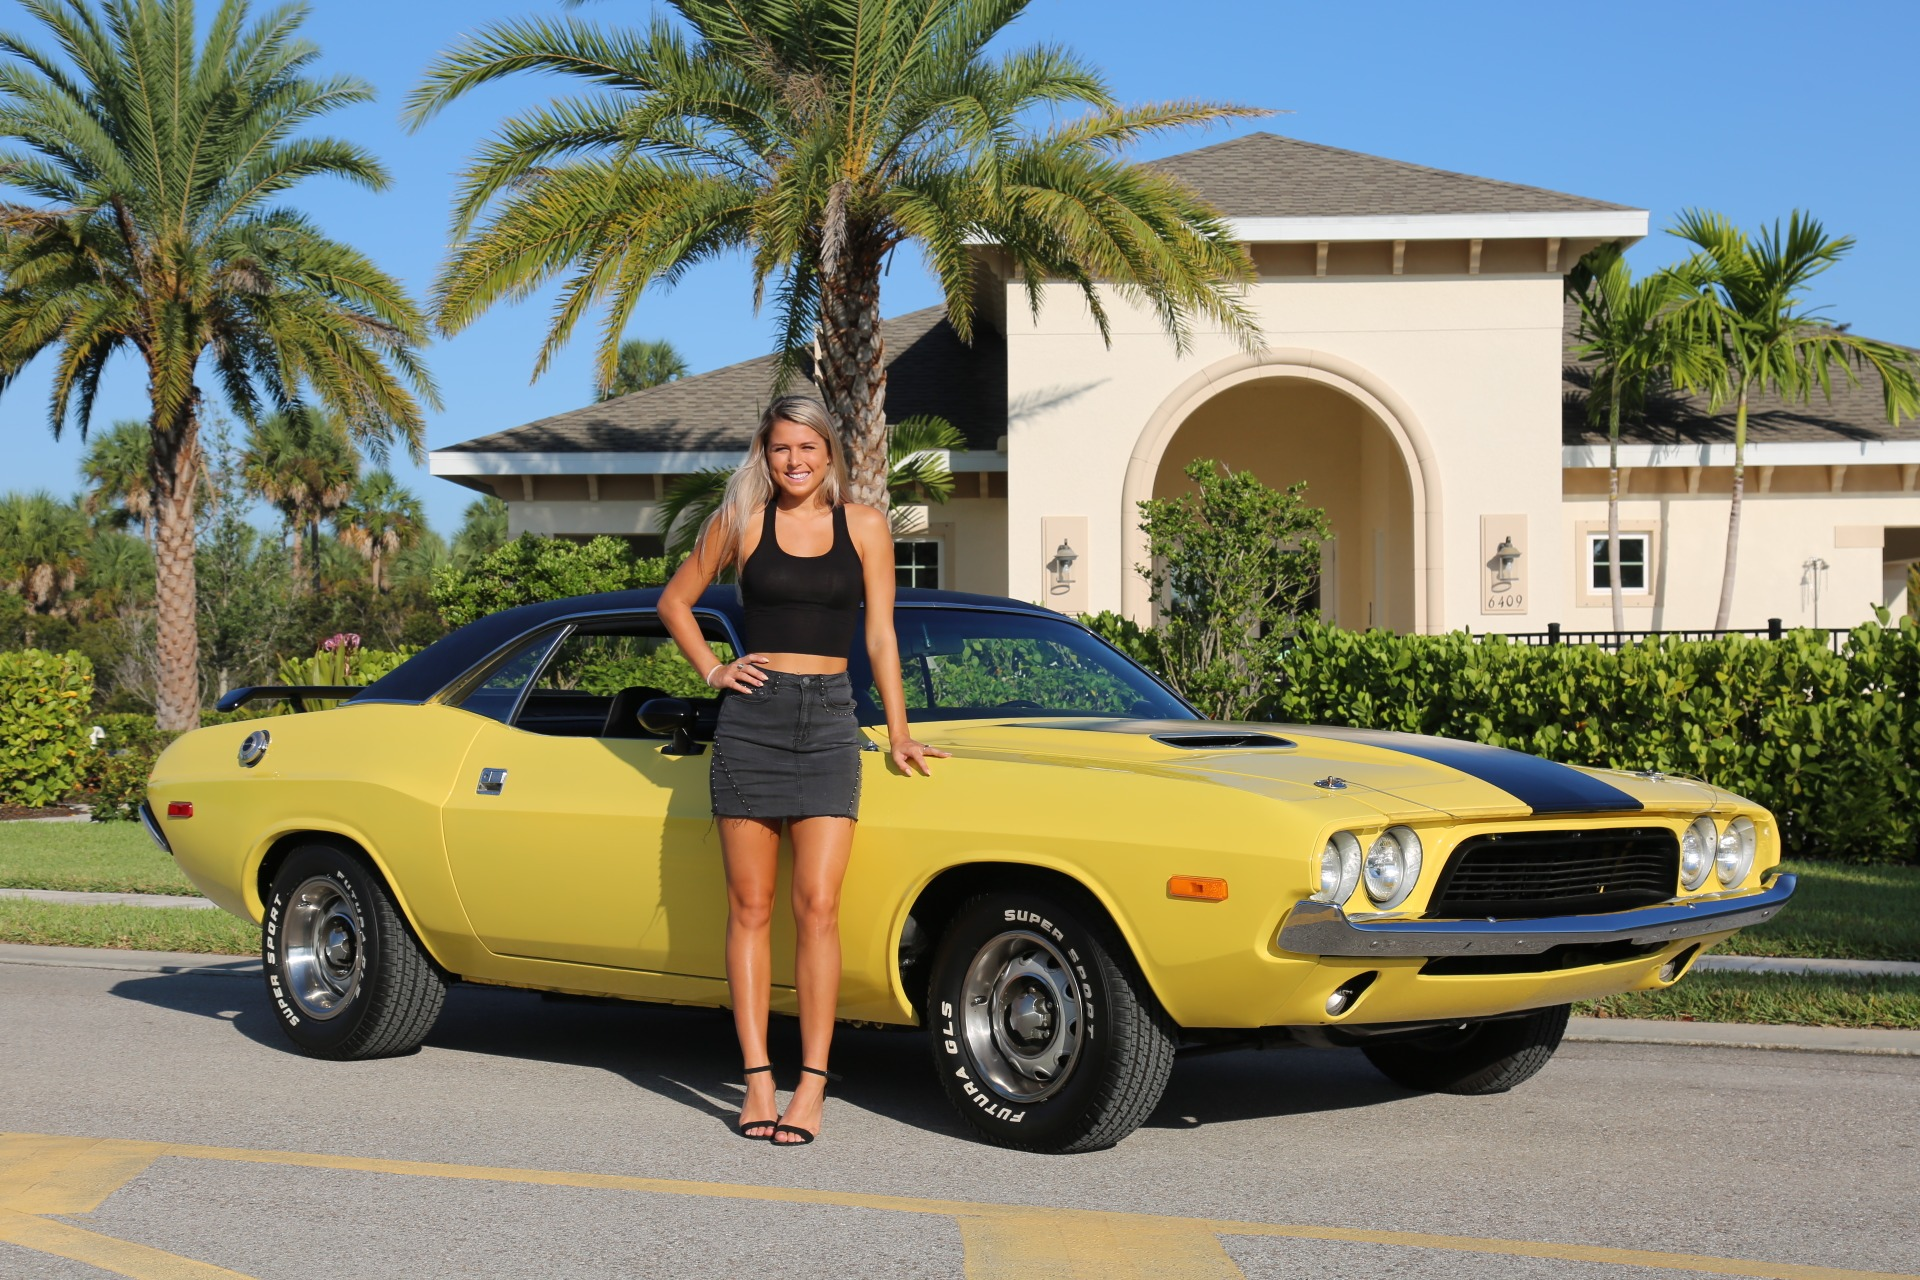 Used 1973 Dodge Challenger 440 V8 for sale $28,000 at Muscle Cars for Sale Inc. in Fort Myers FL 33912 4